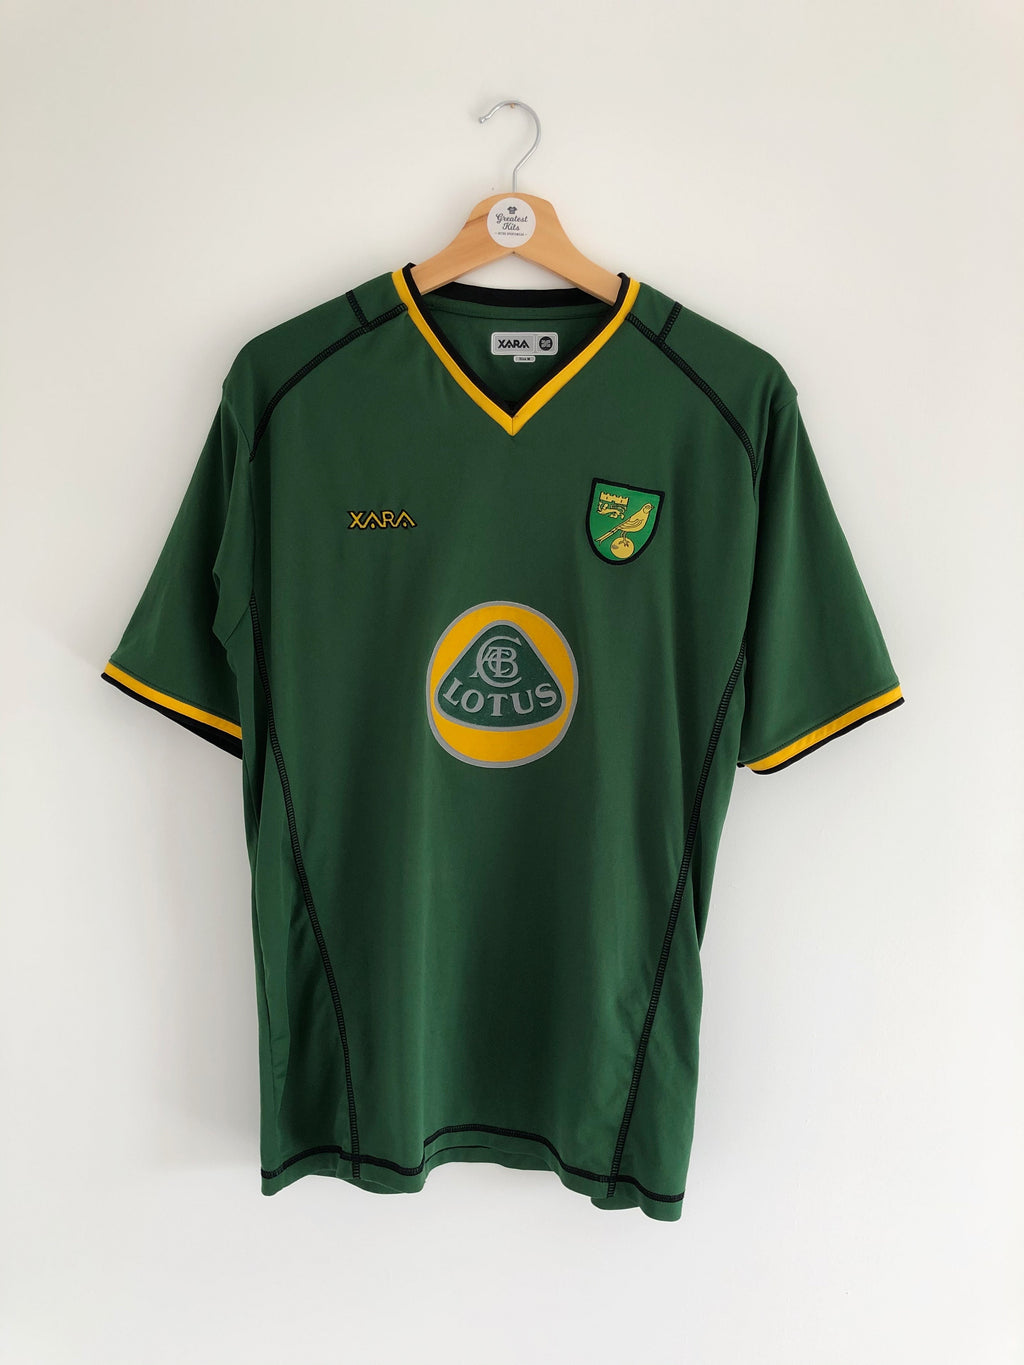 2003/04 Norwich Away Shirt (M) 9/10